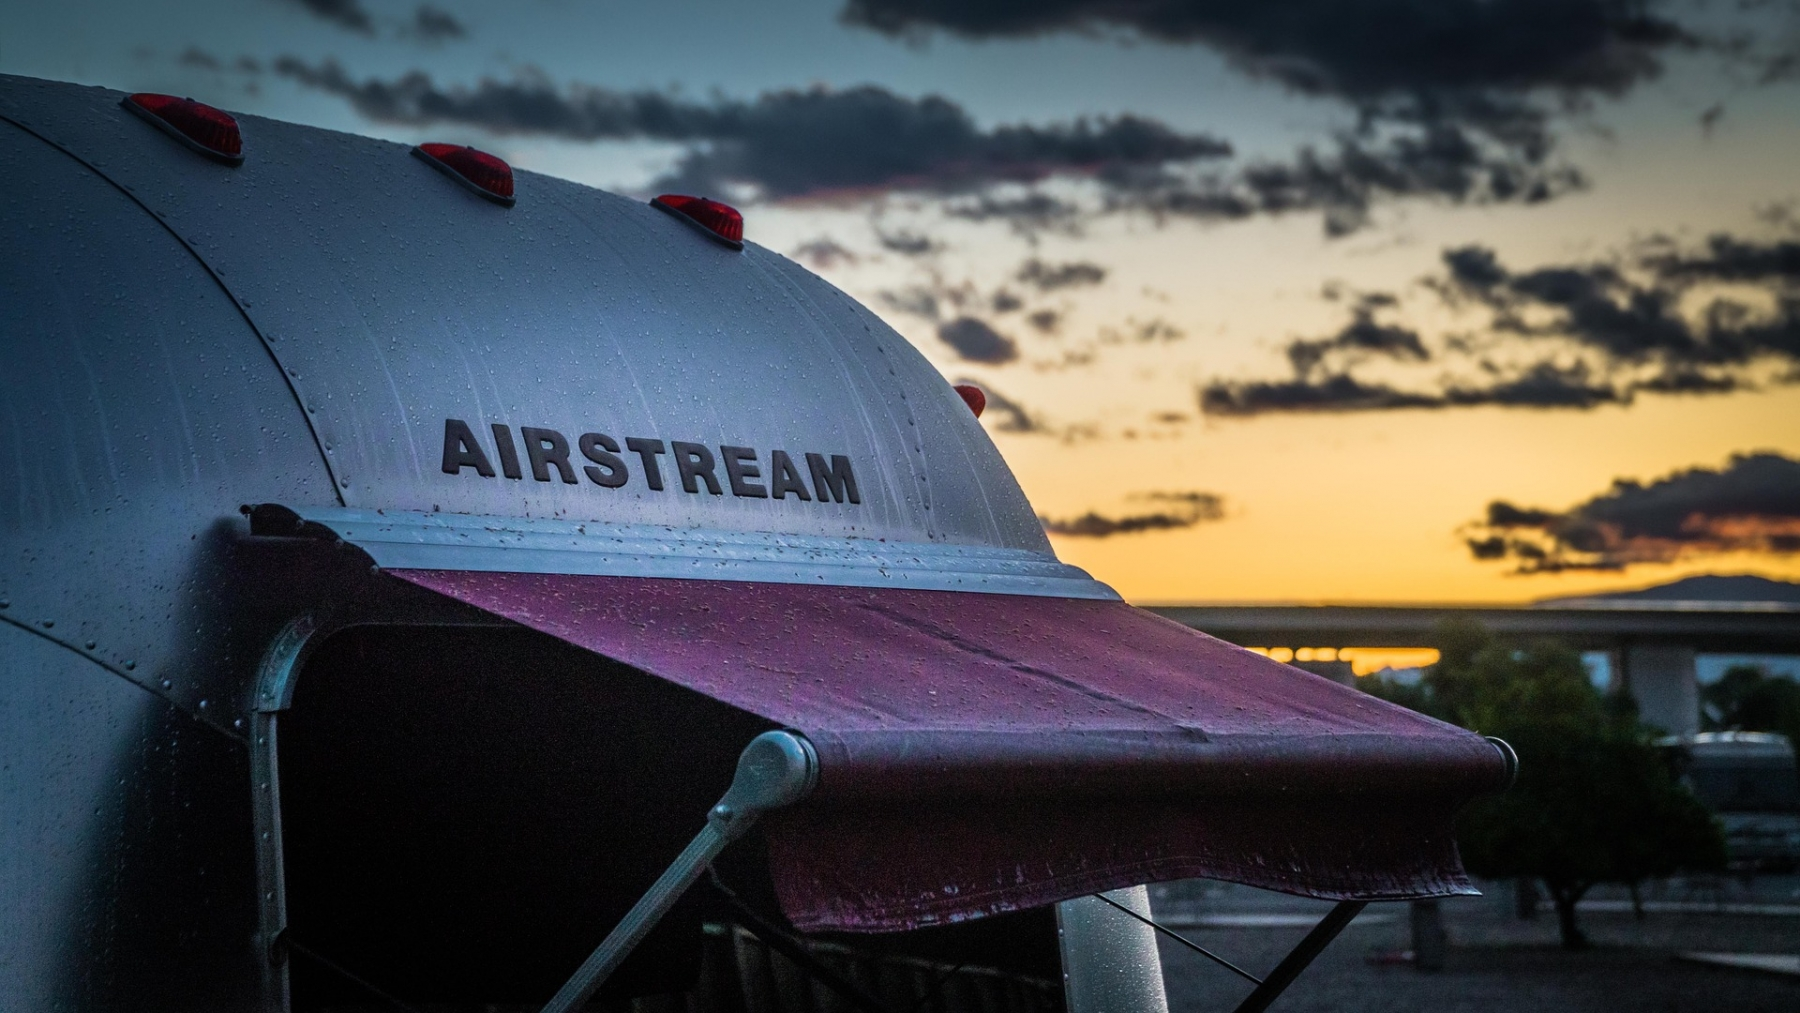 Arizona Airstream Club